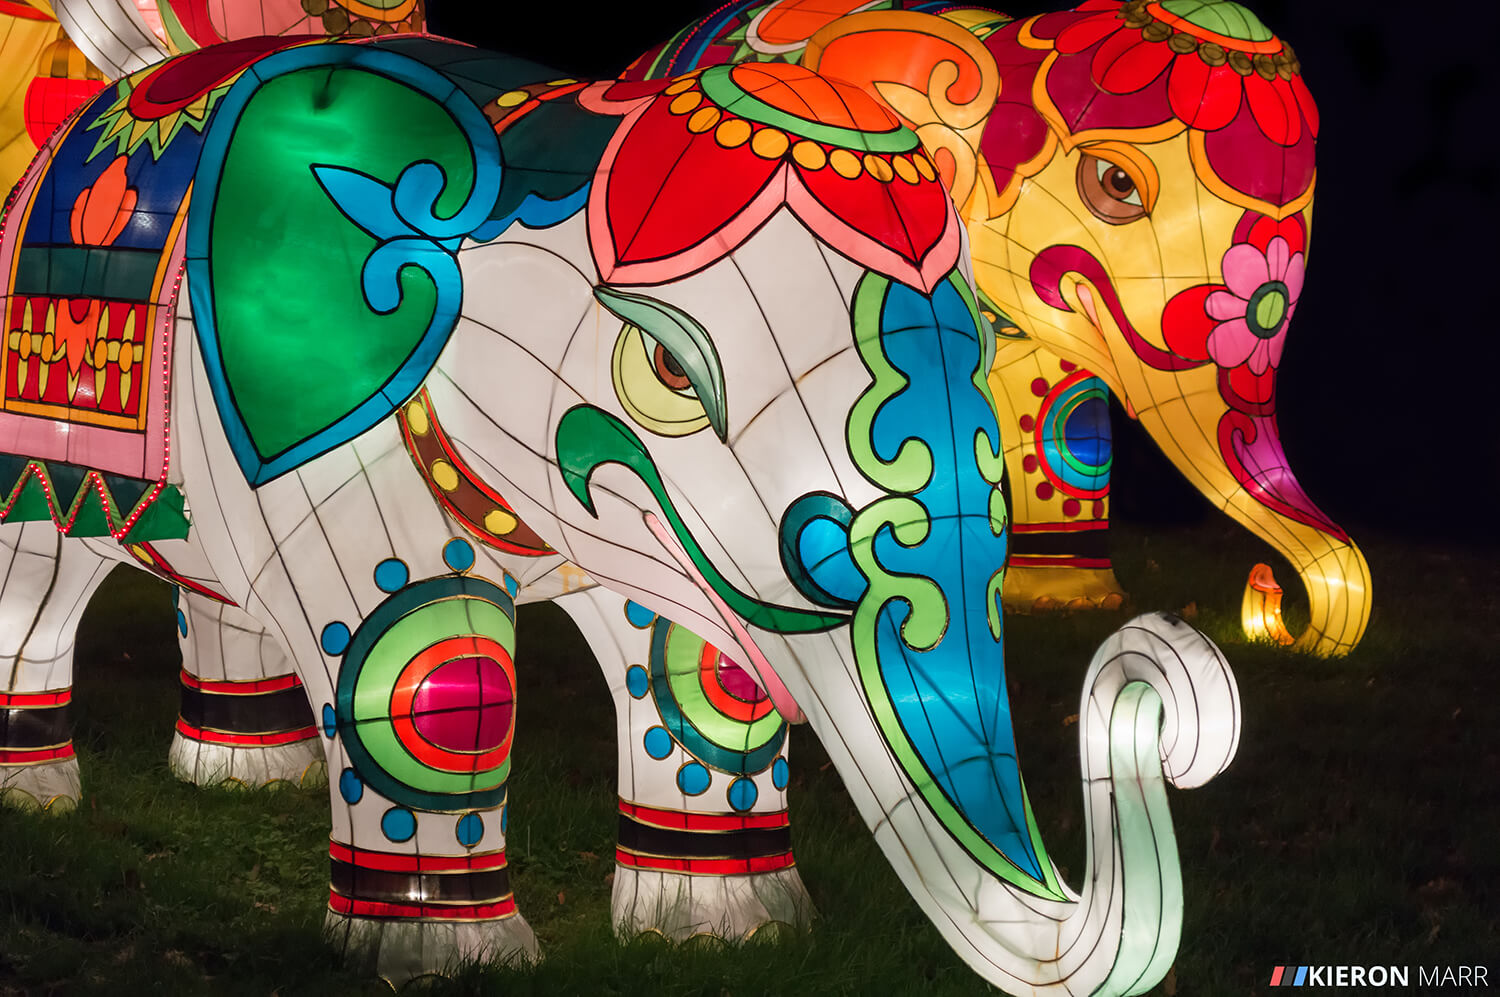 Longleat Festival of Light 2014 - Illuminated Elephants